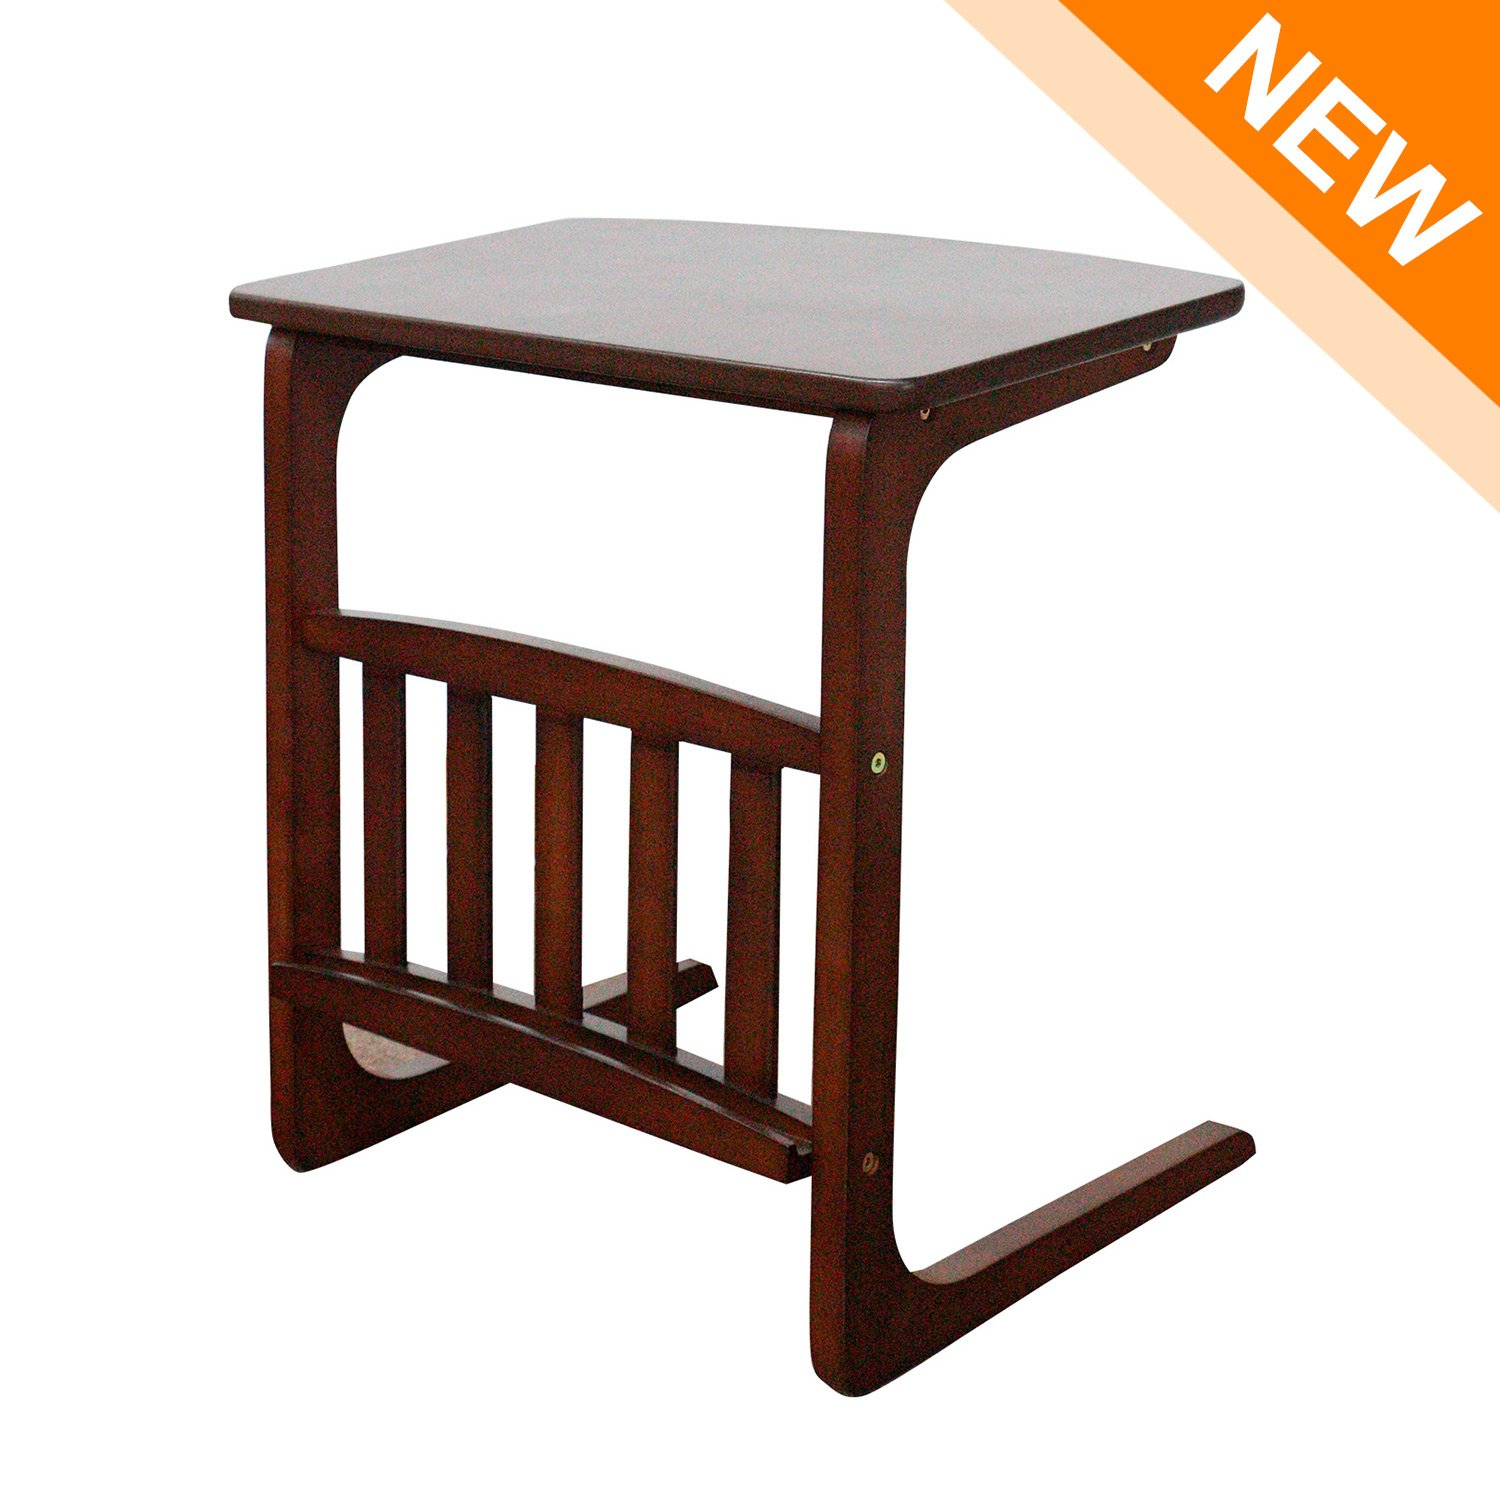 LCH Vintage Snack Side Table, Solid Wood End Table for Coffee Laptop, Slides next to Sofa Couch, Dark Brown